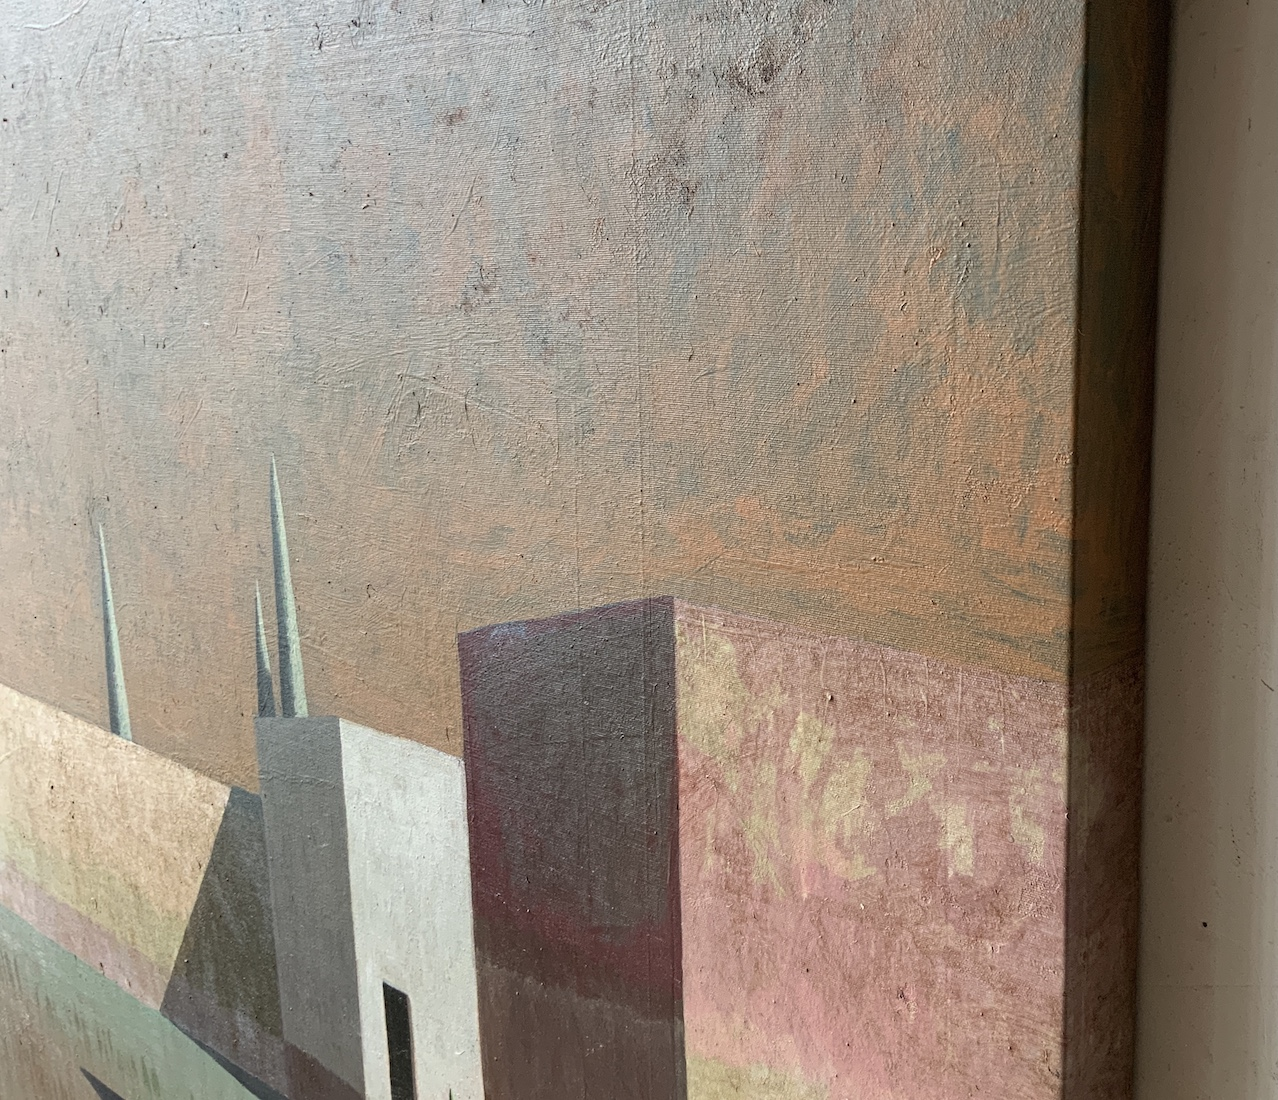 Contemporary painting - Ramon Enrich - ARCA 6 - detail 2